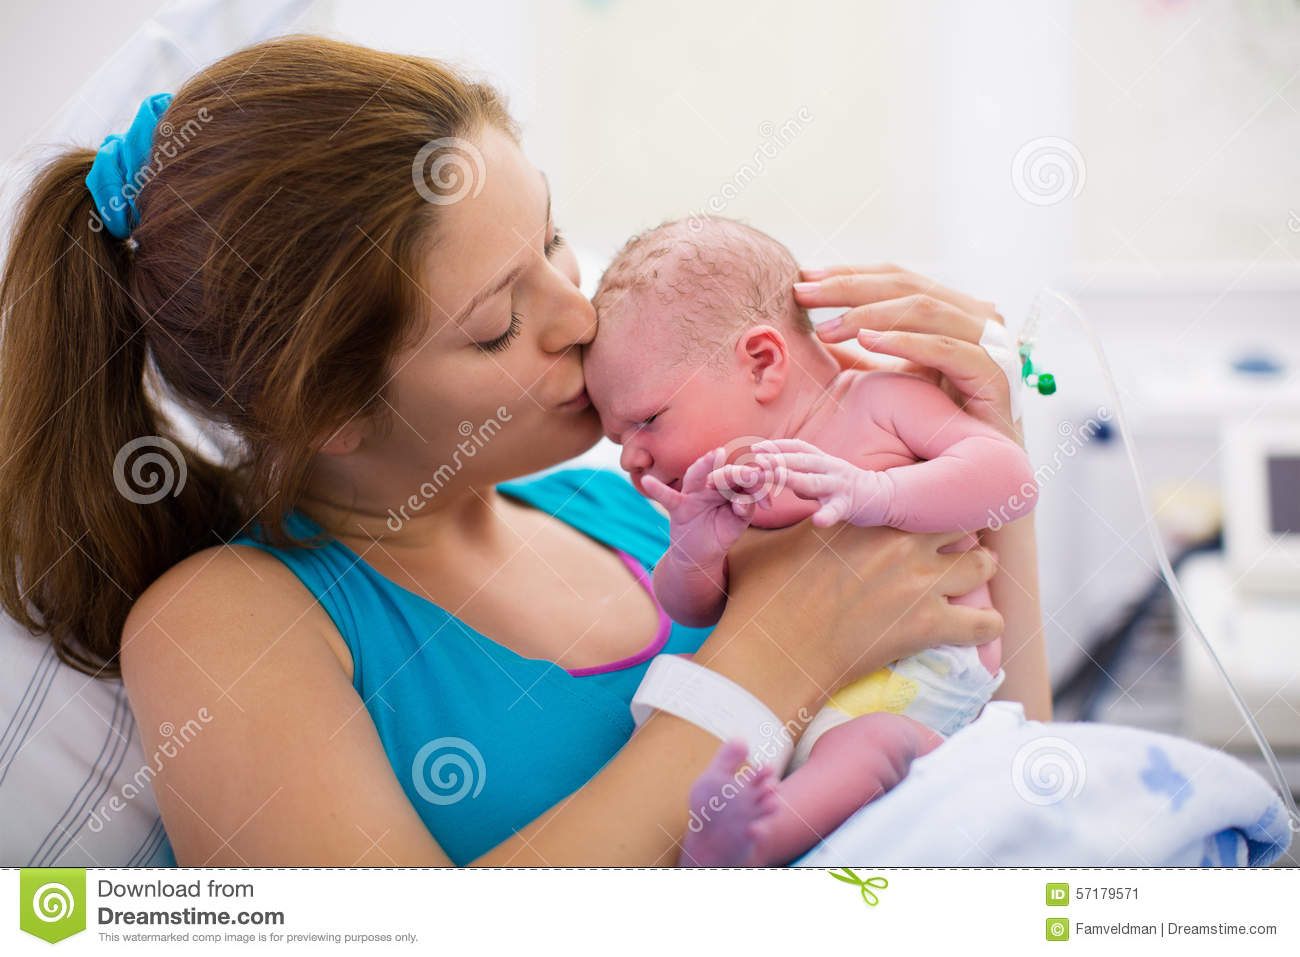 Baby Delivery In Labor Room